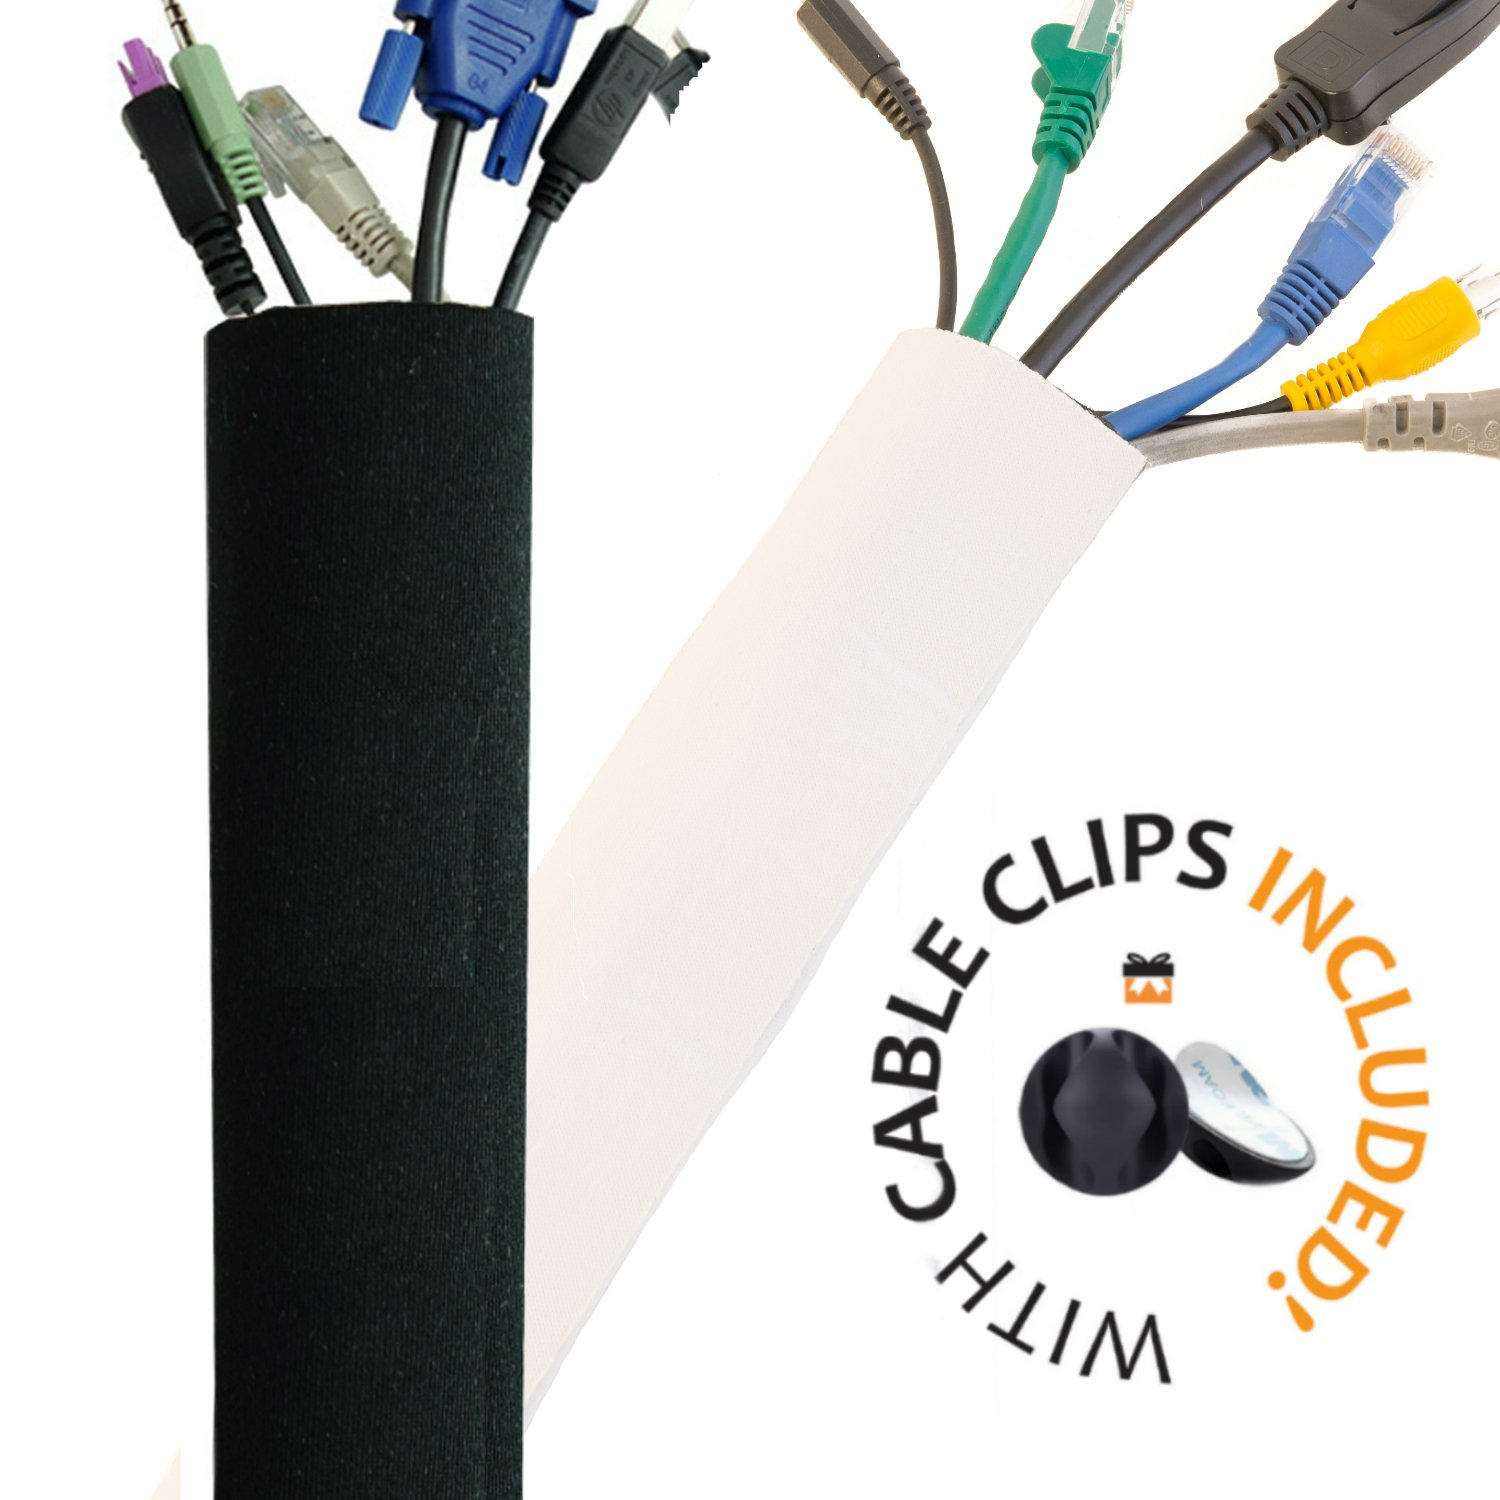 PREMIUM 63'' Cable Management Sleeve with Free Cable Clips | Best Cords  Organizer for